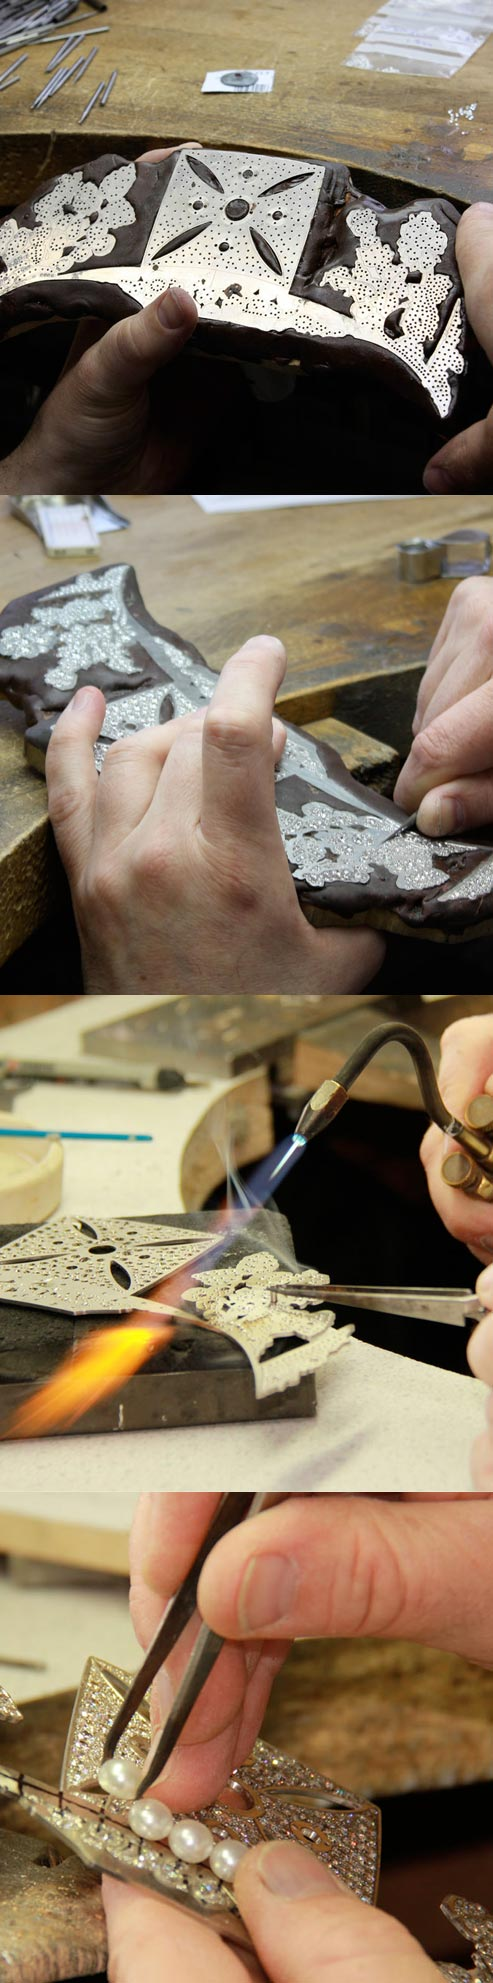 The tiara in the hands of an Asprey Master Jeweller, from solder to setting.